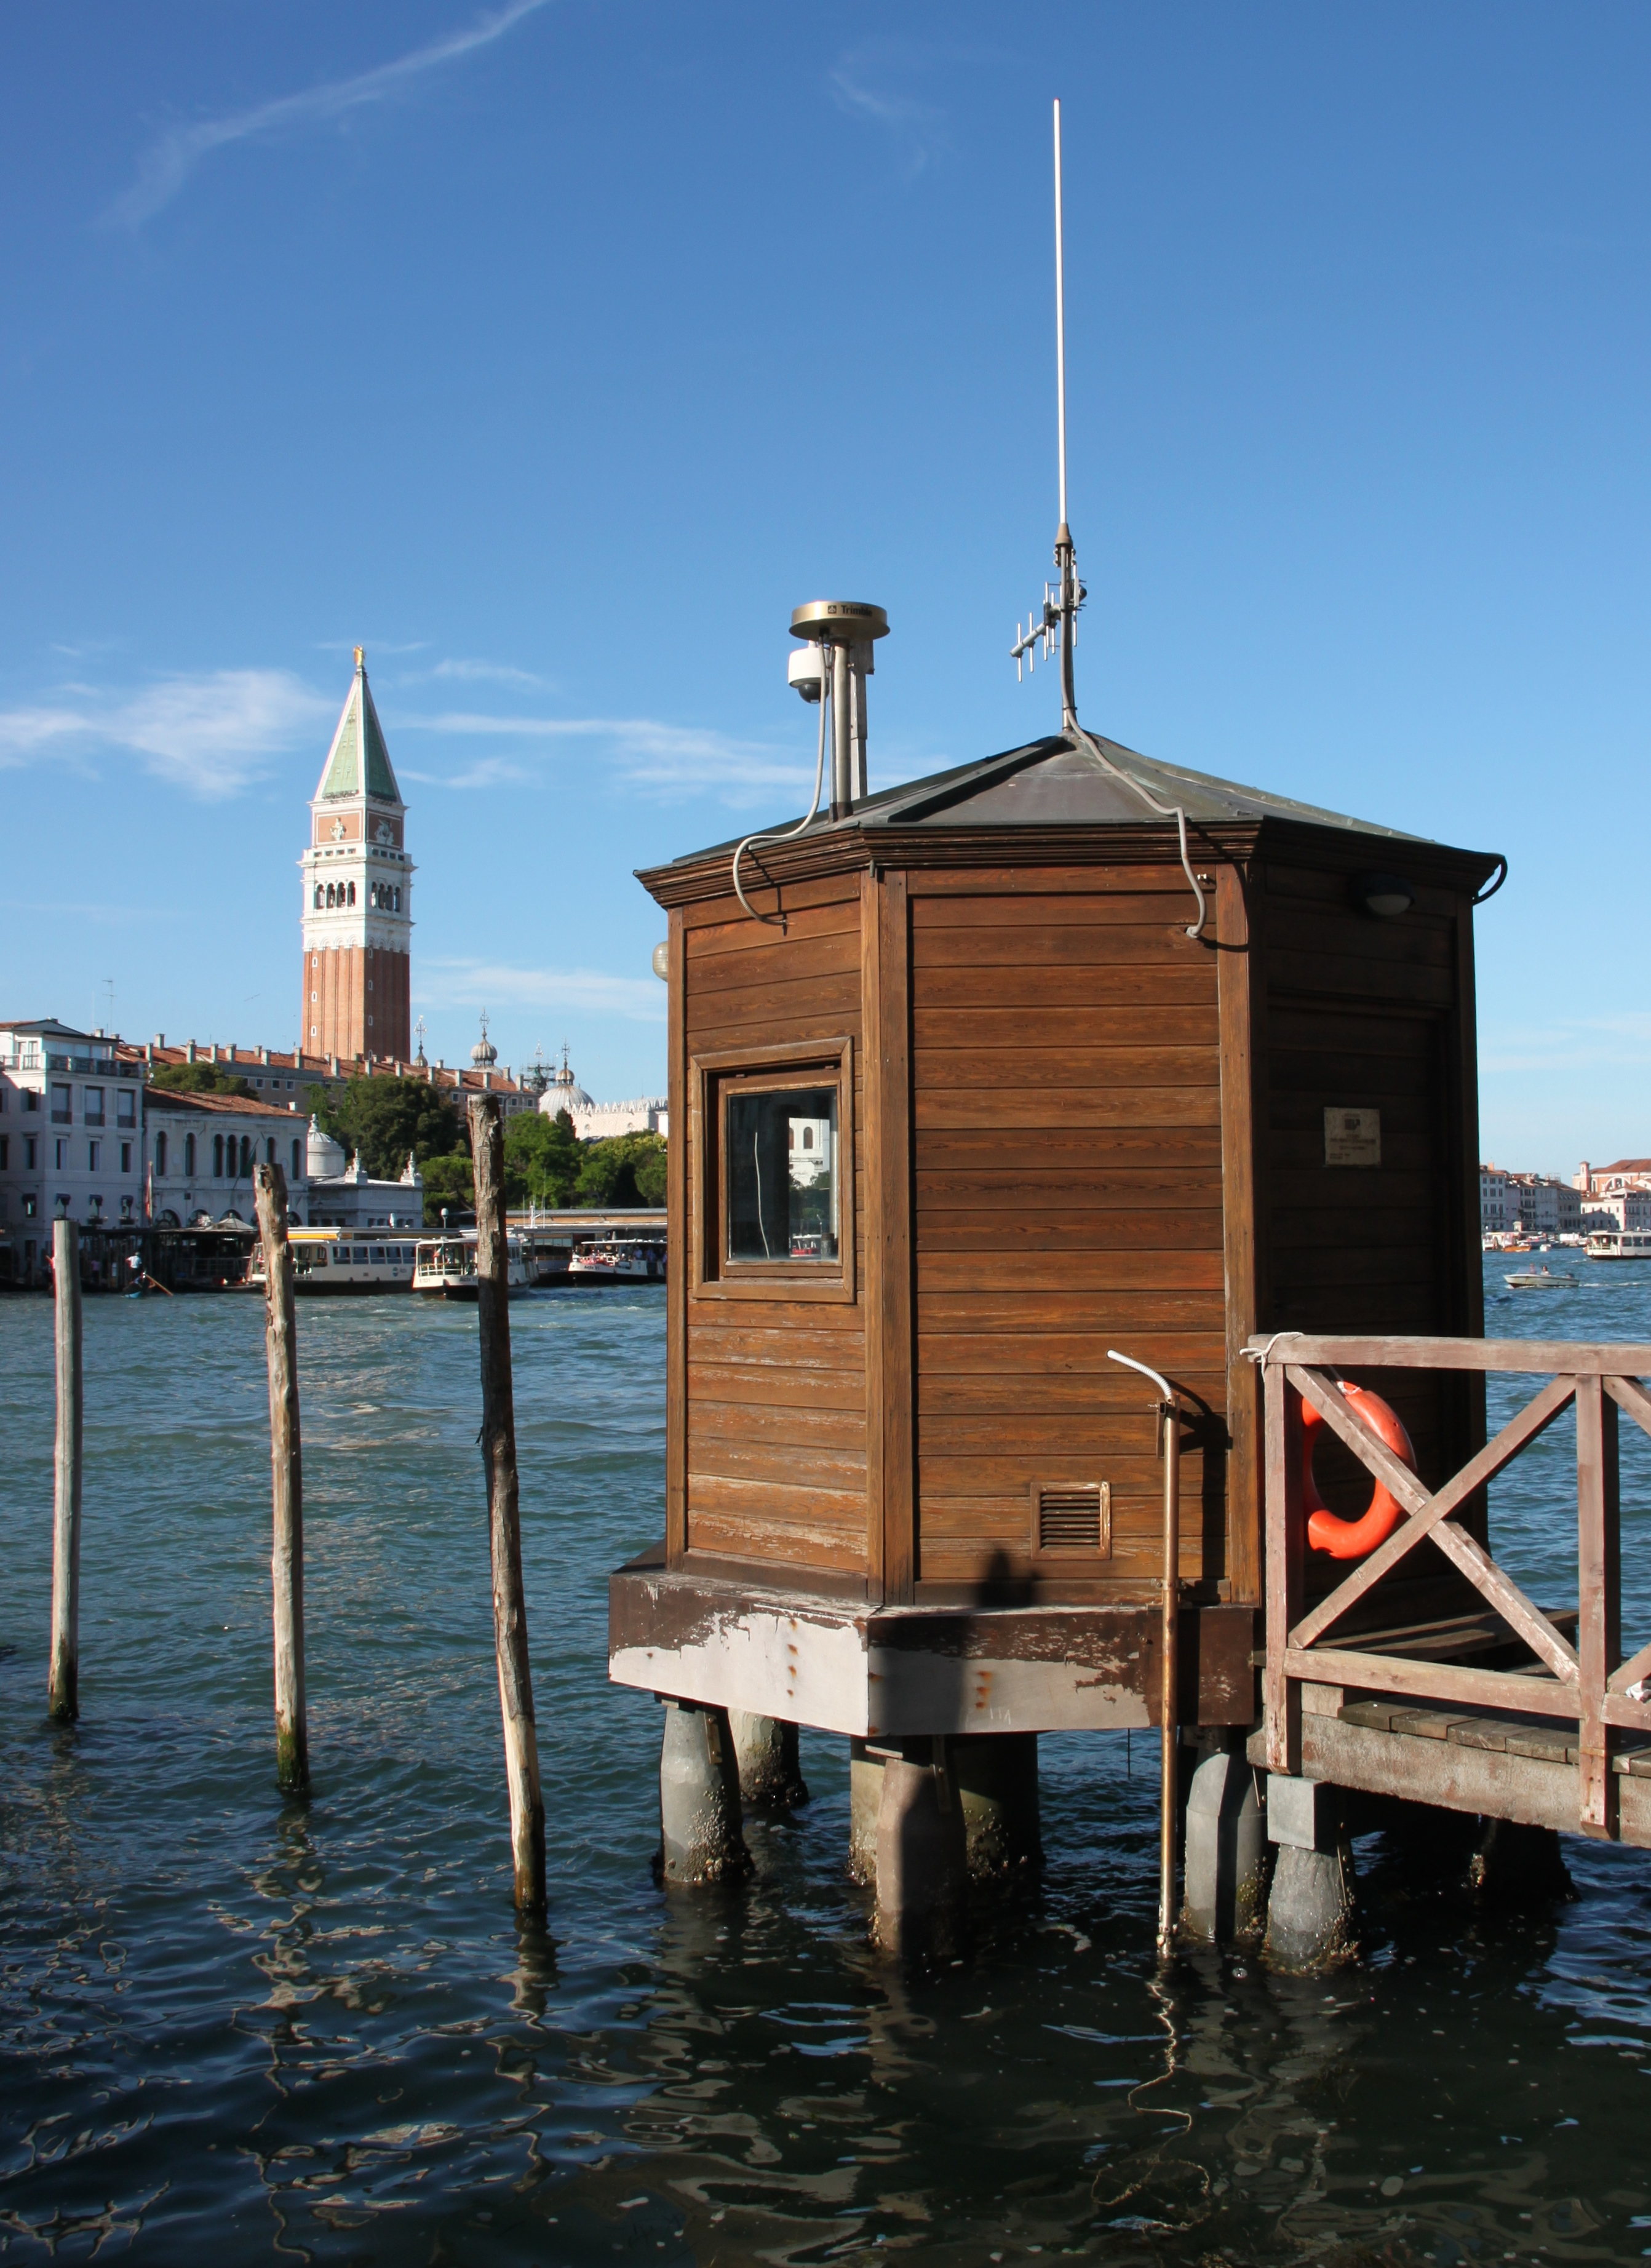 Hydrographic weather and tide station at Punta della Dogna, Venice, Italy